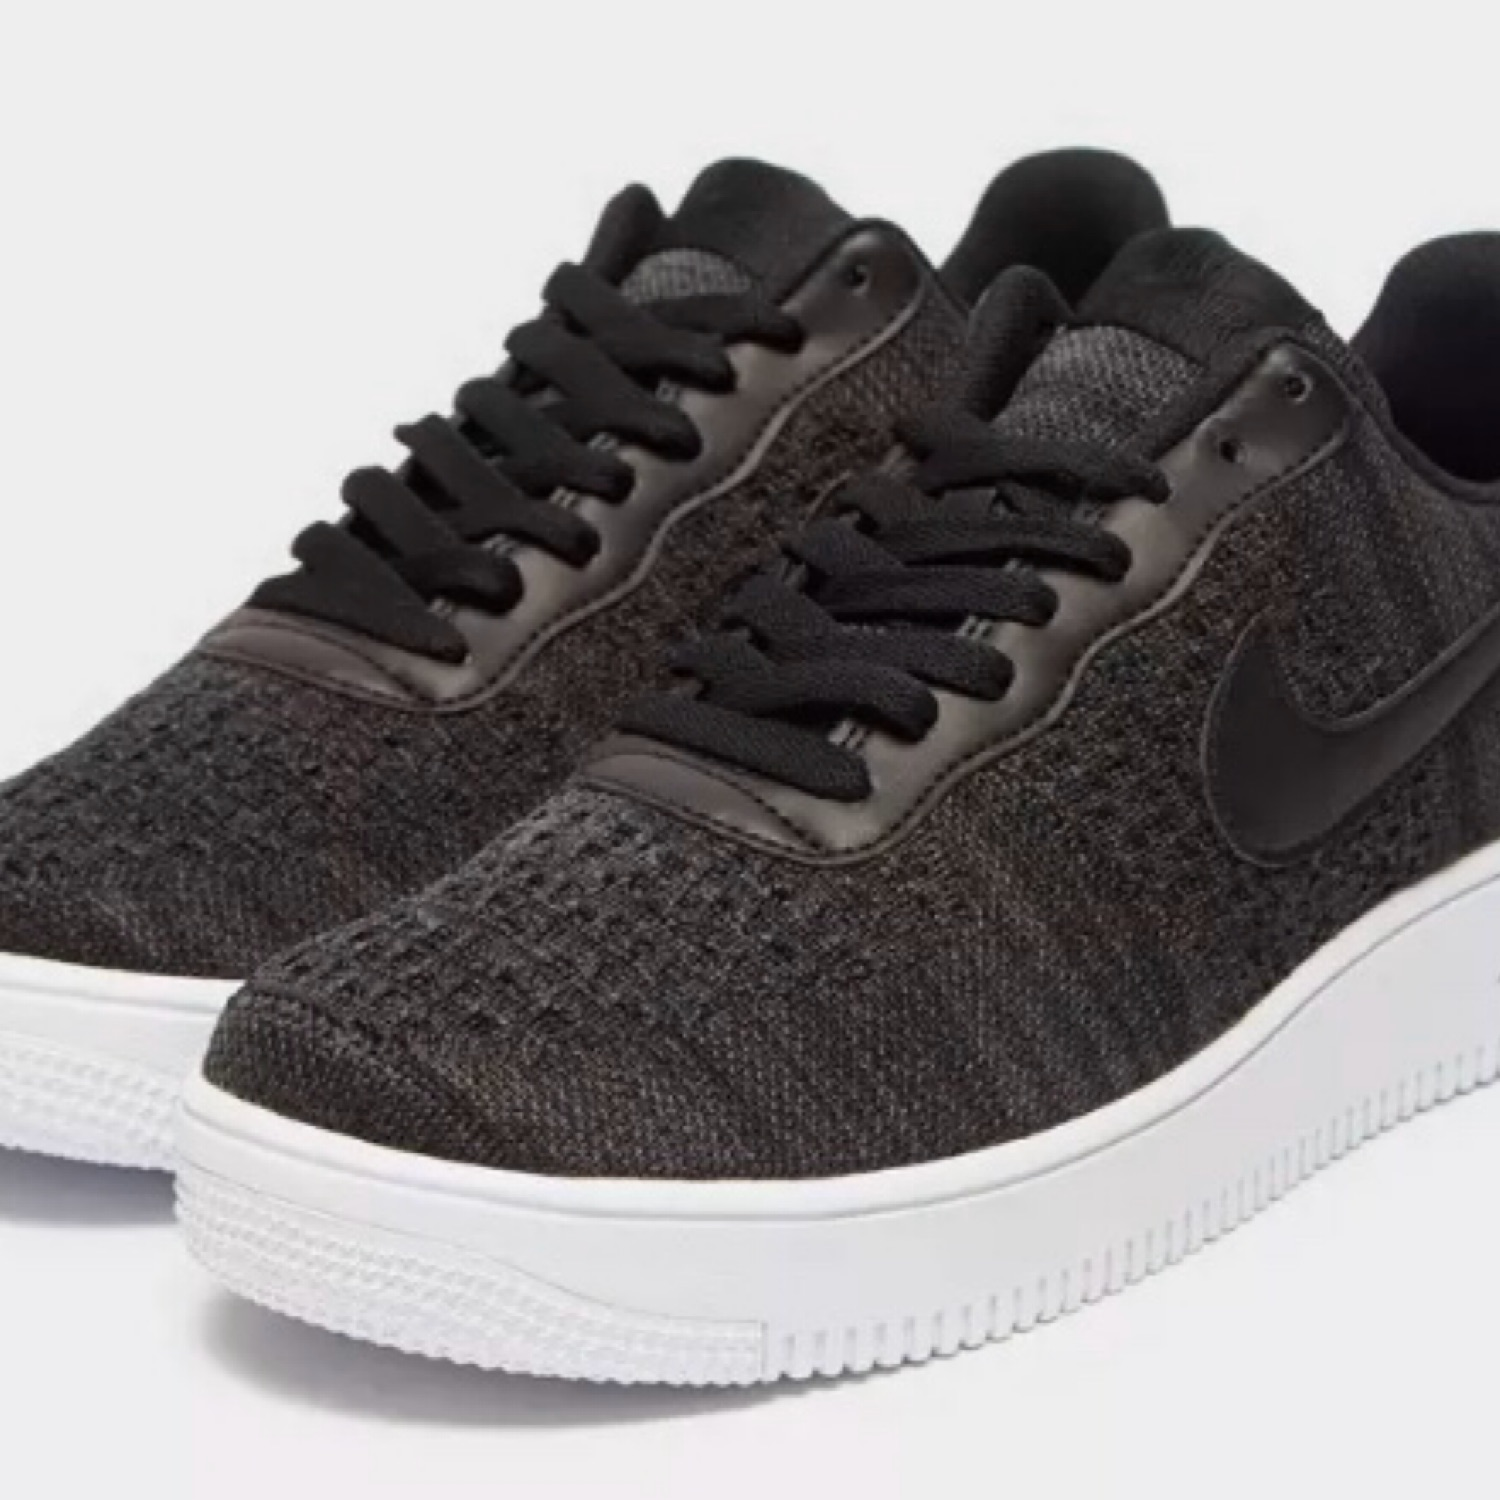 Perca Cuadrante eficacia  Nike Air Force 1 Flyknit 2.0